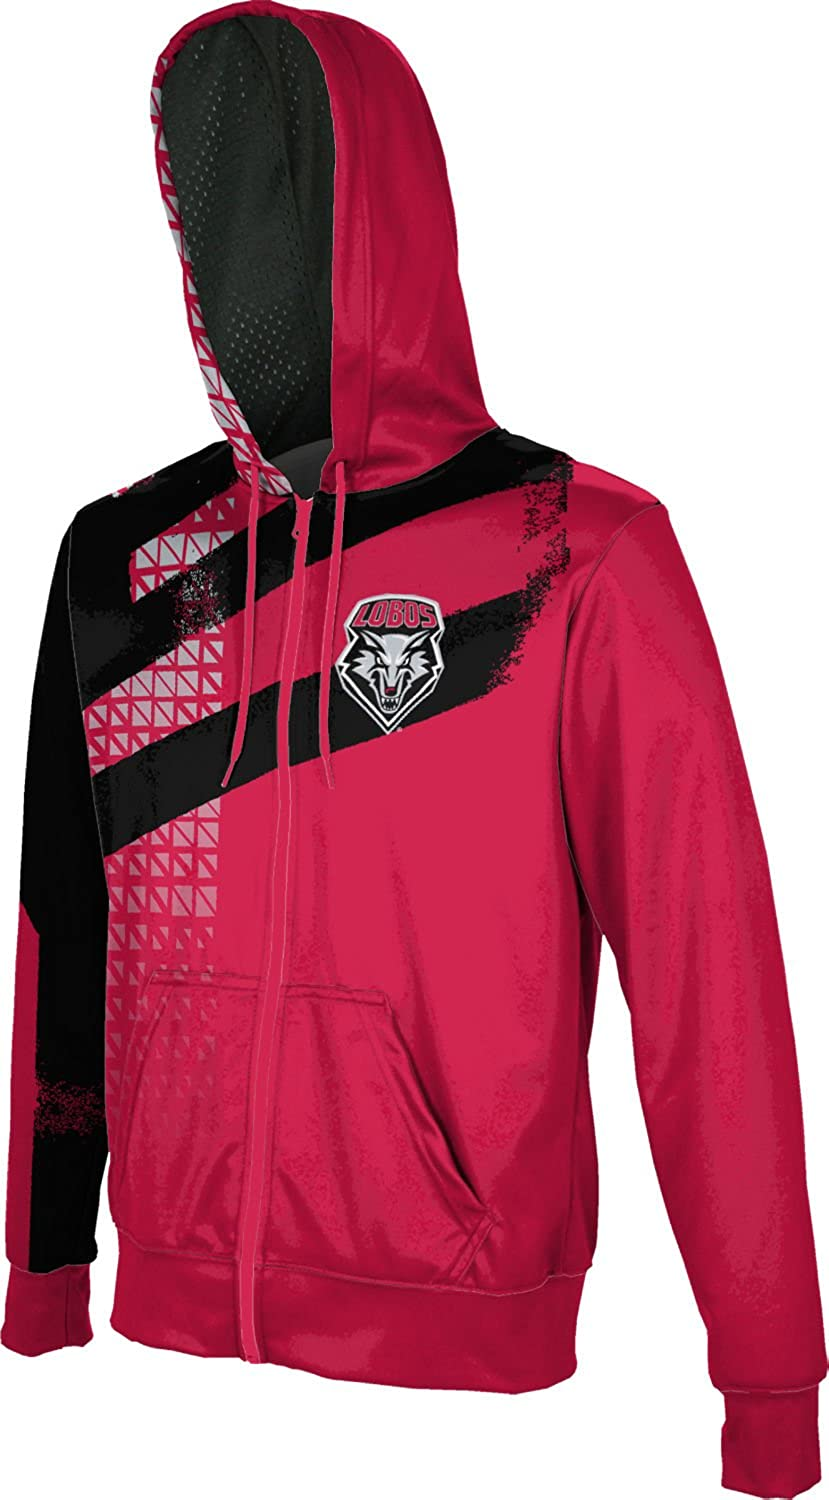 Structure ProSphere University of New Mexico Boys Full Zip Hoodie